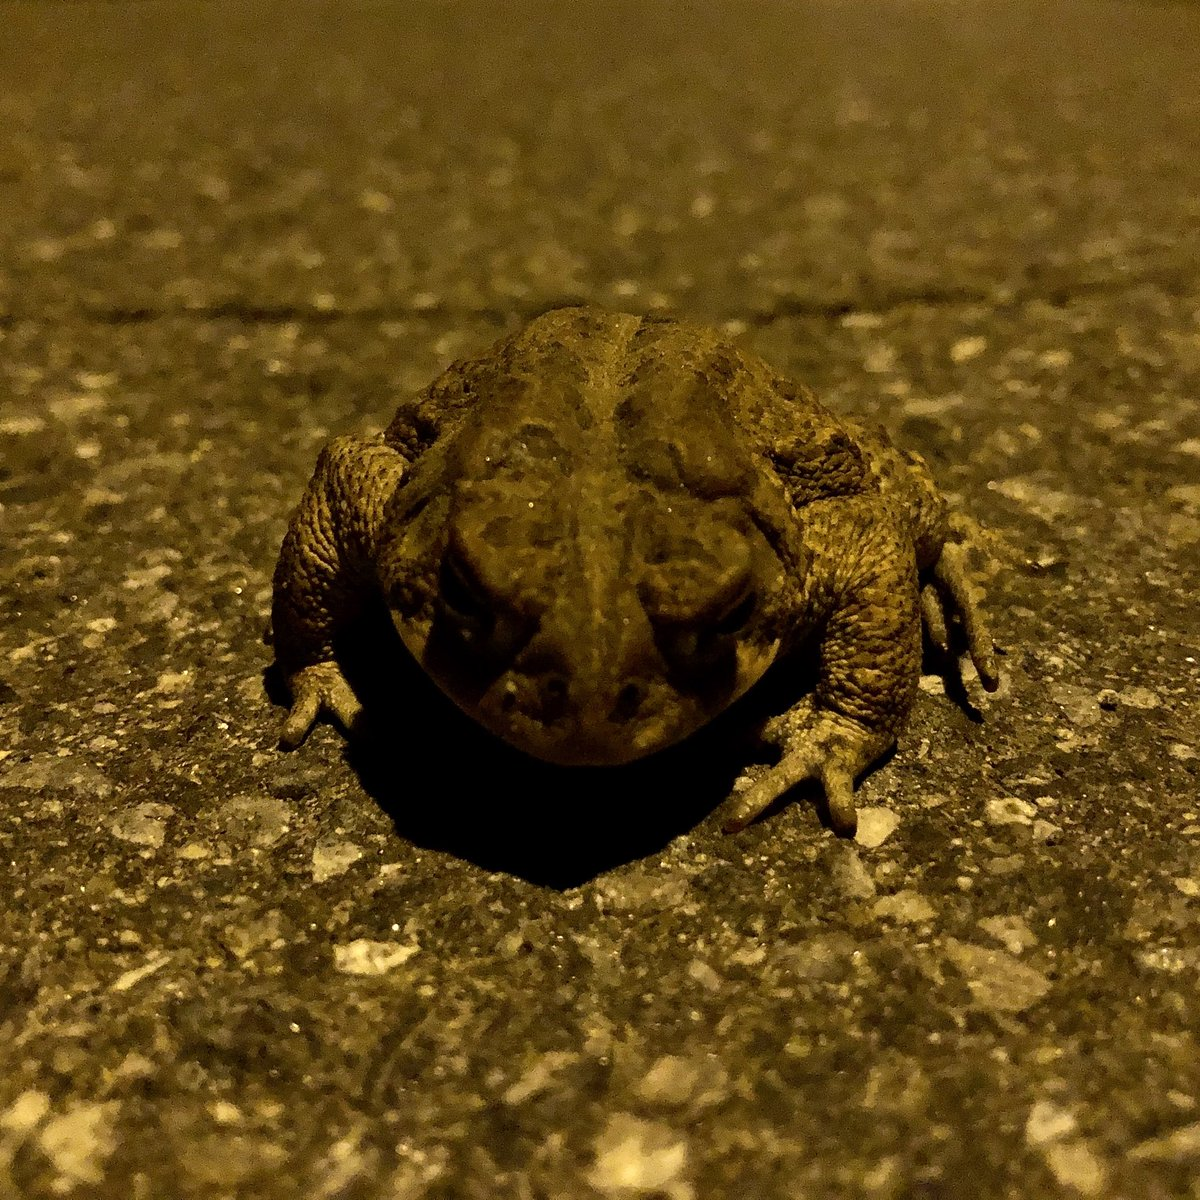 The night of the toad.